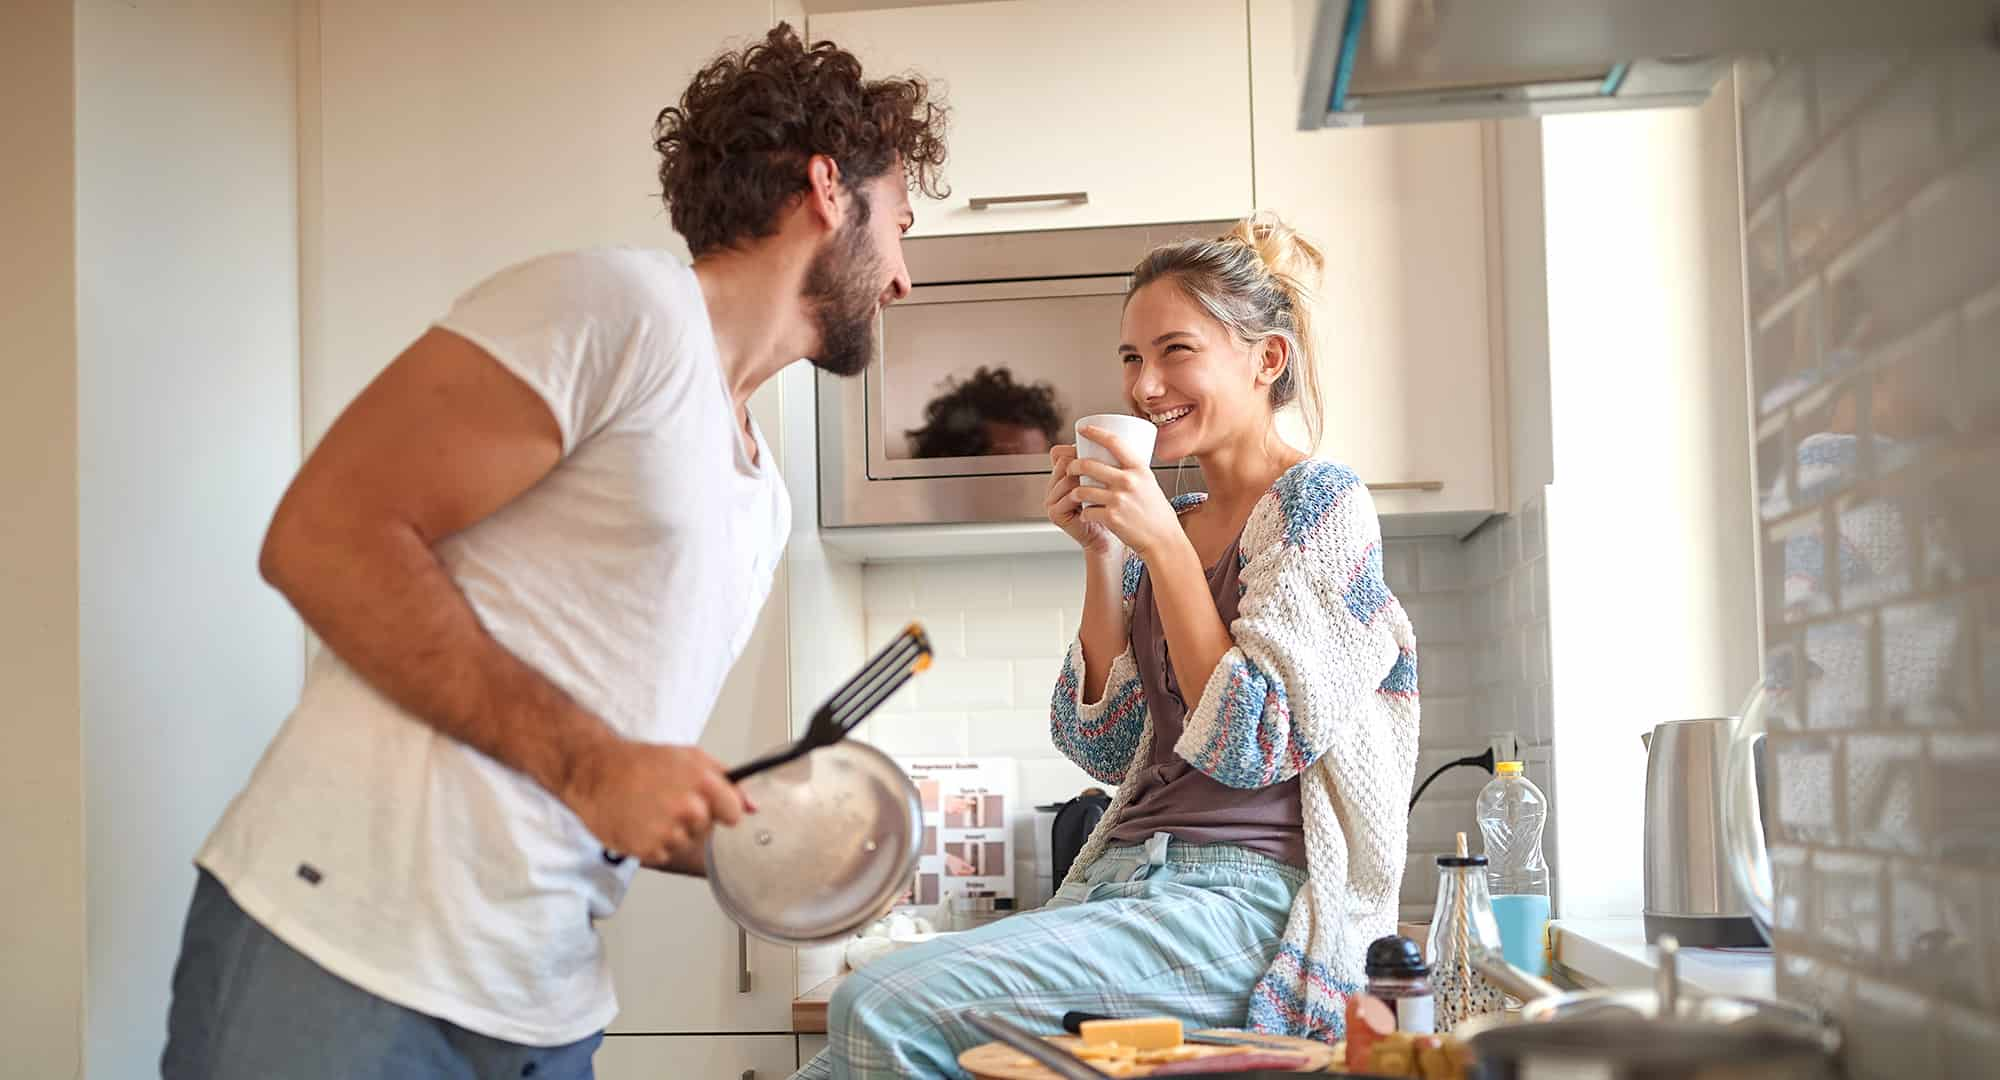 Couple Time – The Importance of Talking, Listening and Having Fun